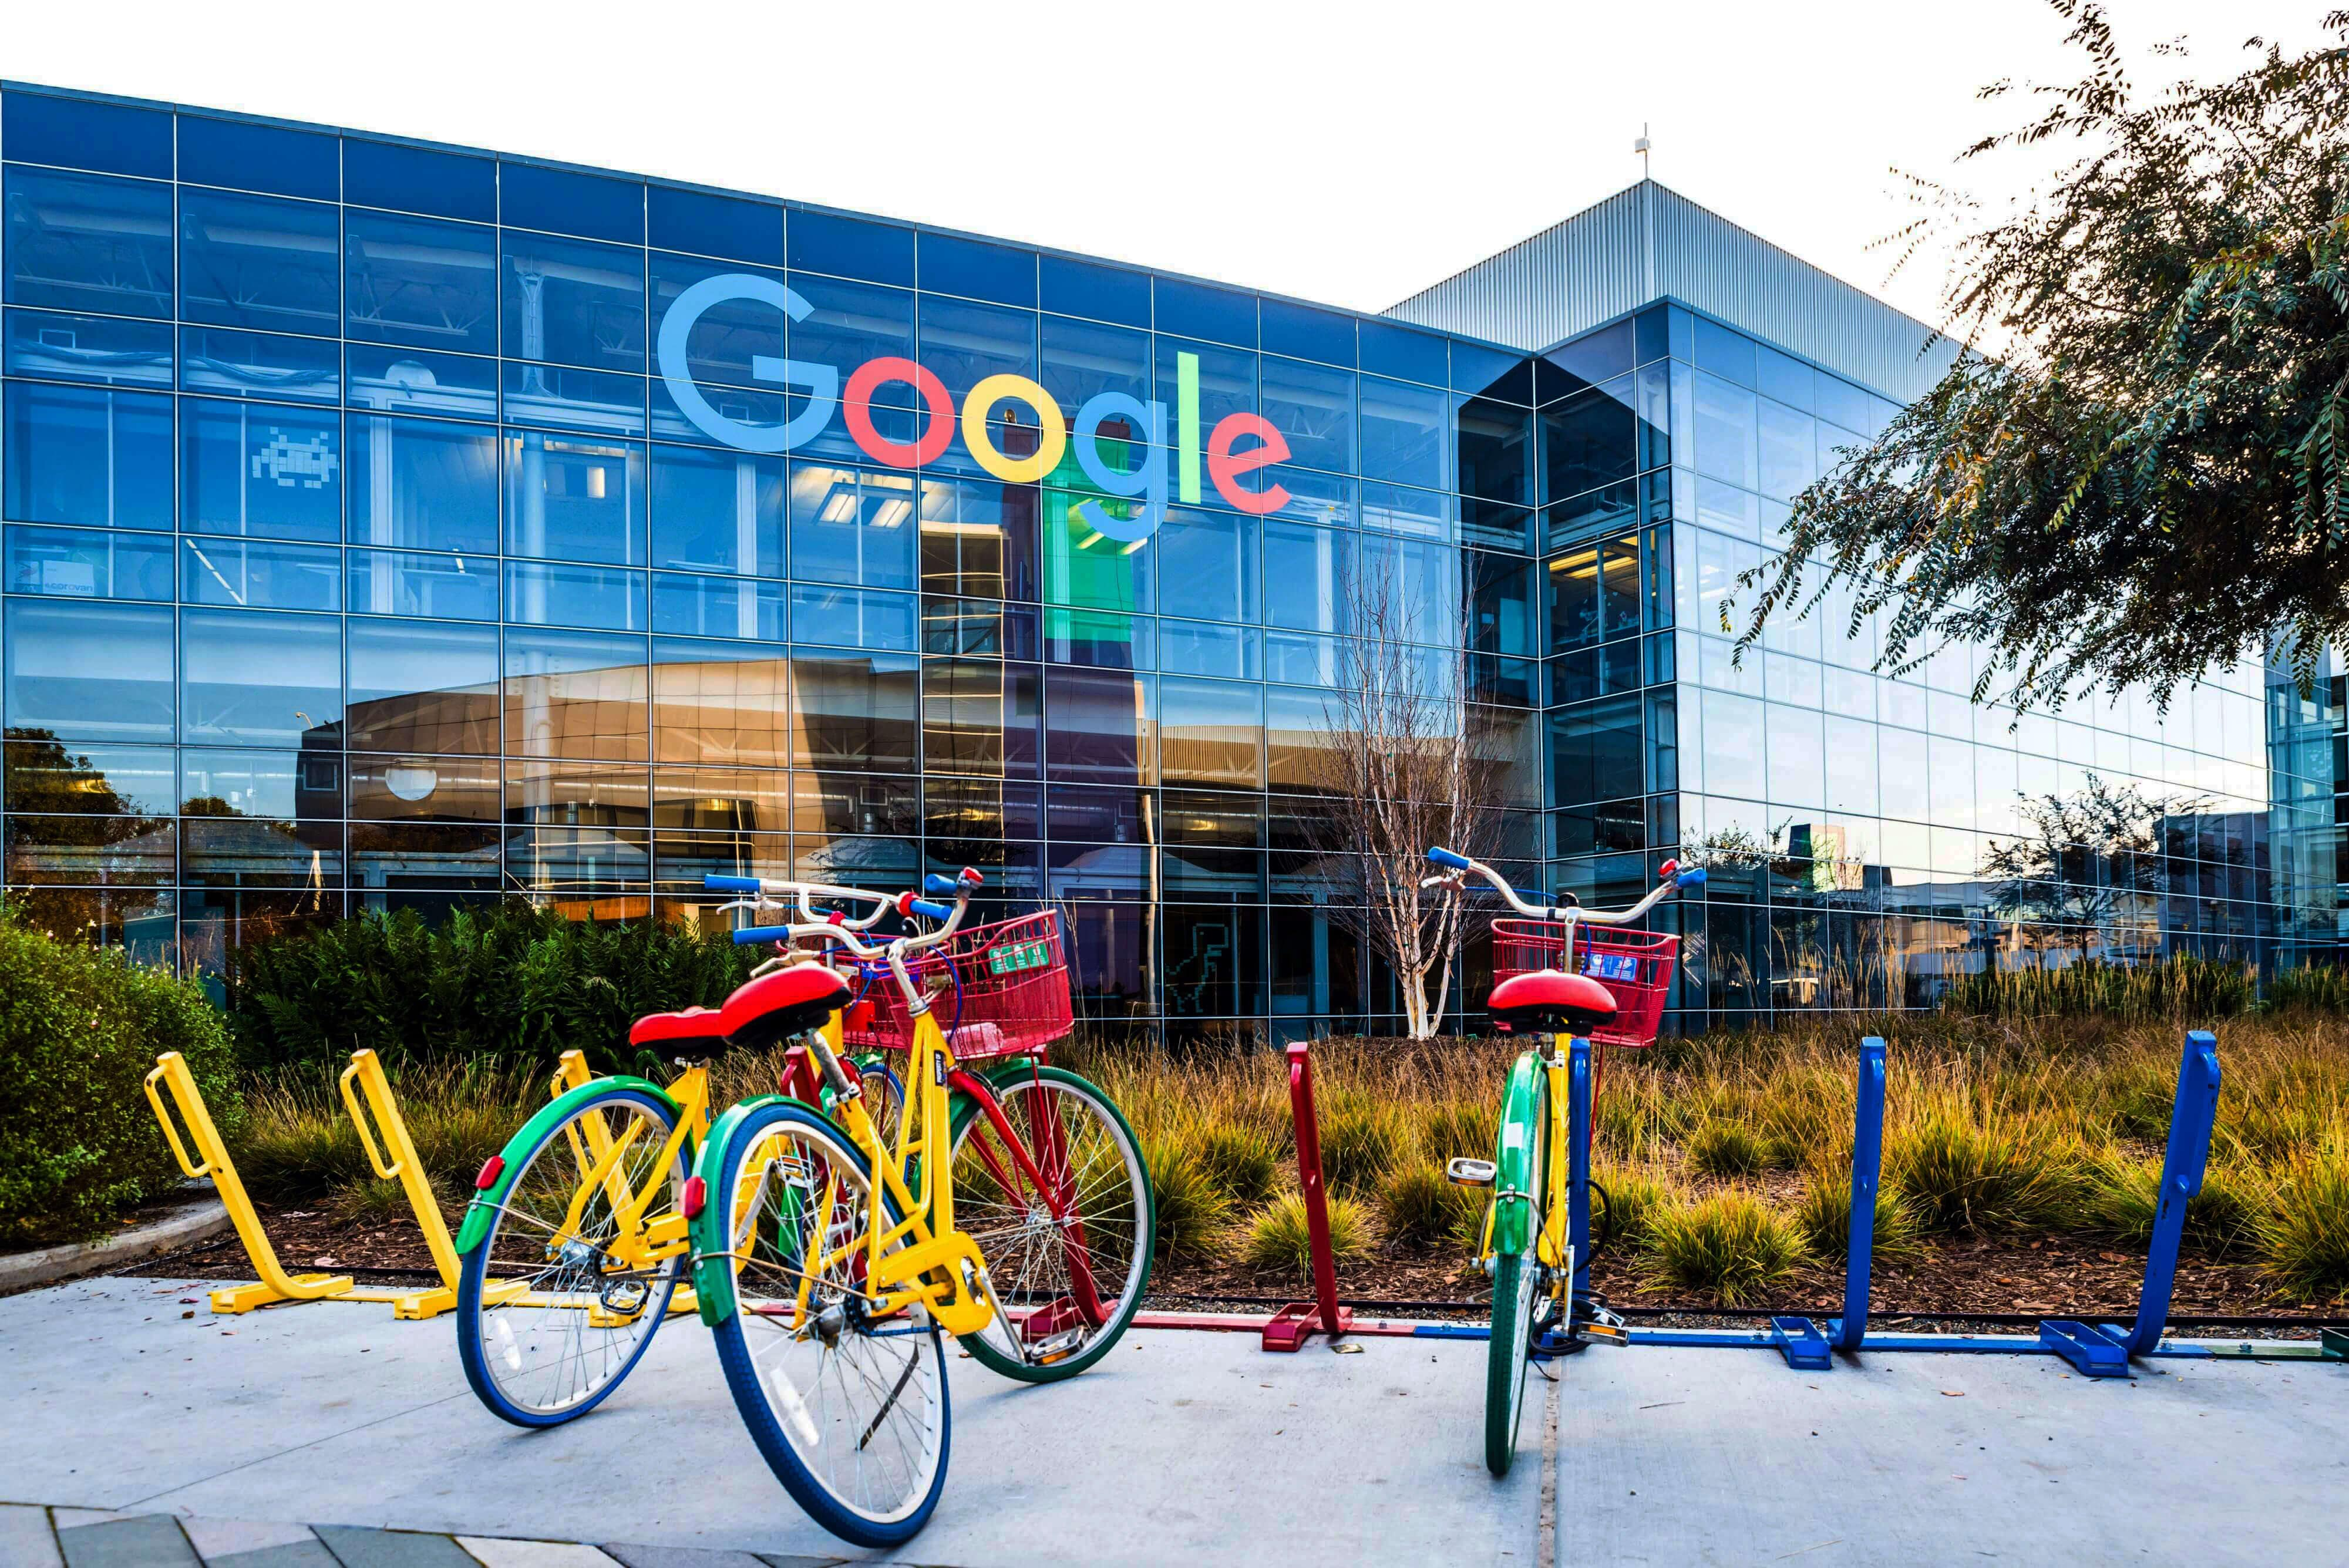 google_googleplex_silicon-valley-tiny-4-min